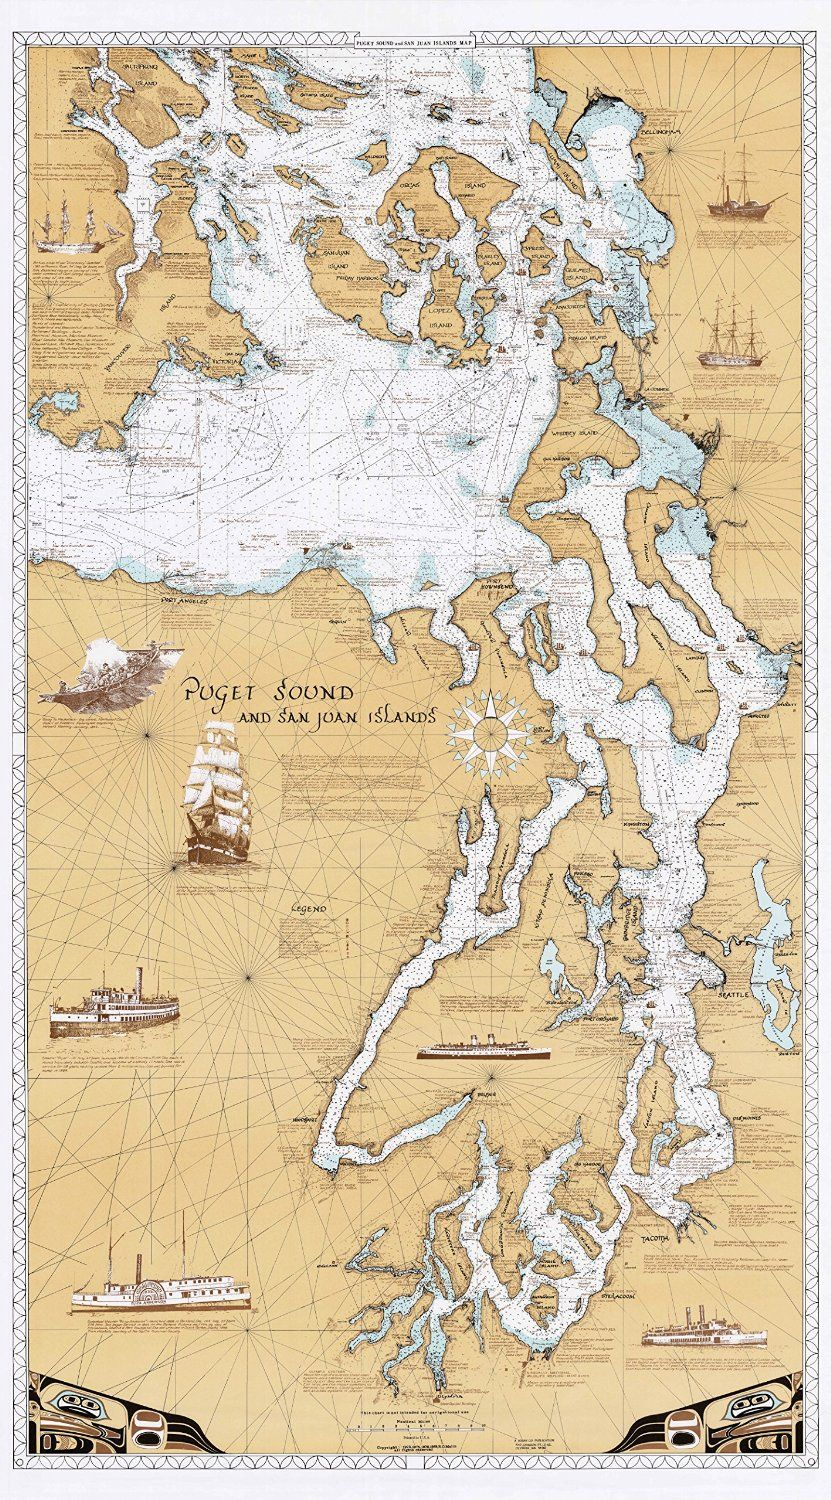 Amazon Uk Camano Island Amazon Sobay Map Puget Sound San Juan Islands Chart